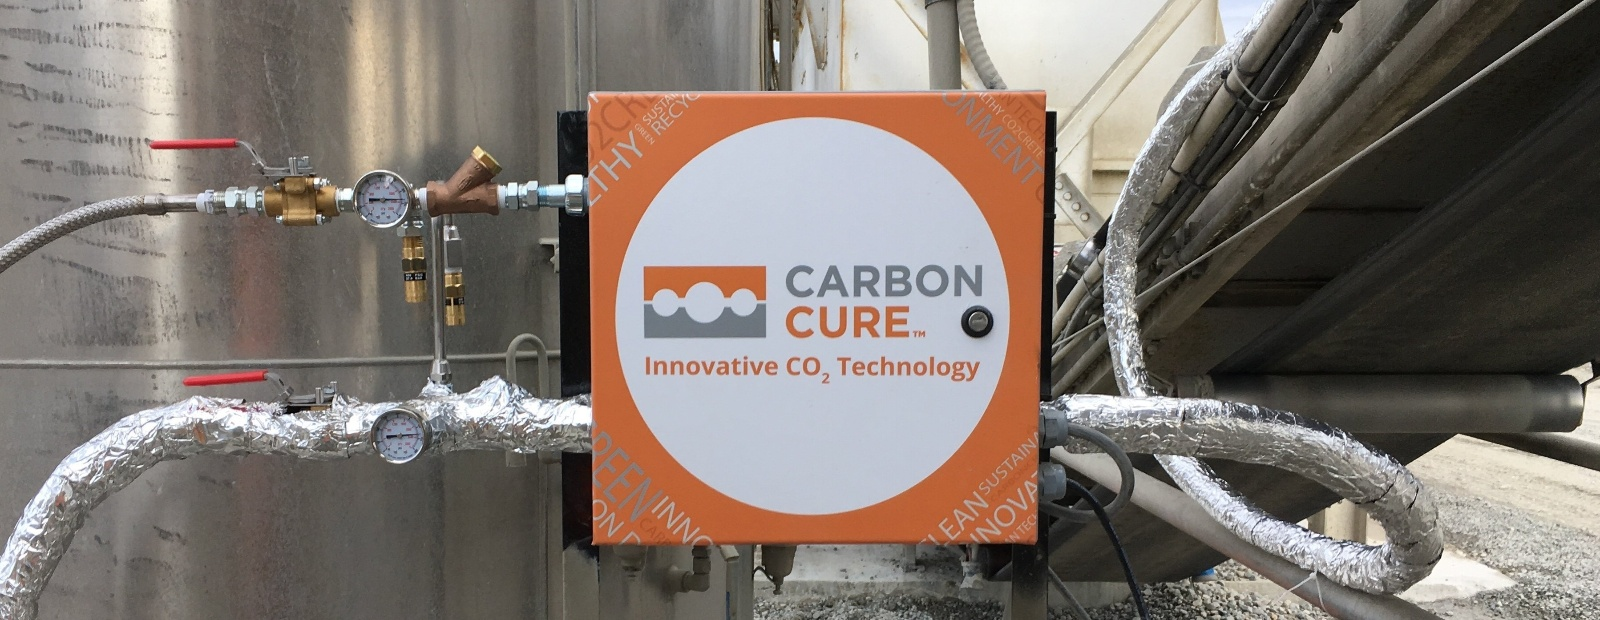 CarbonCure Box - Strategic Partnership with Air Gas.jpg